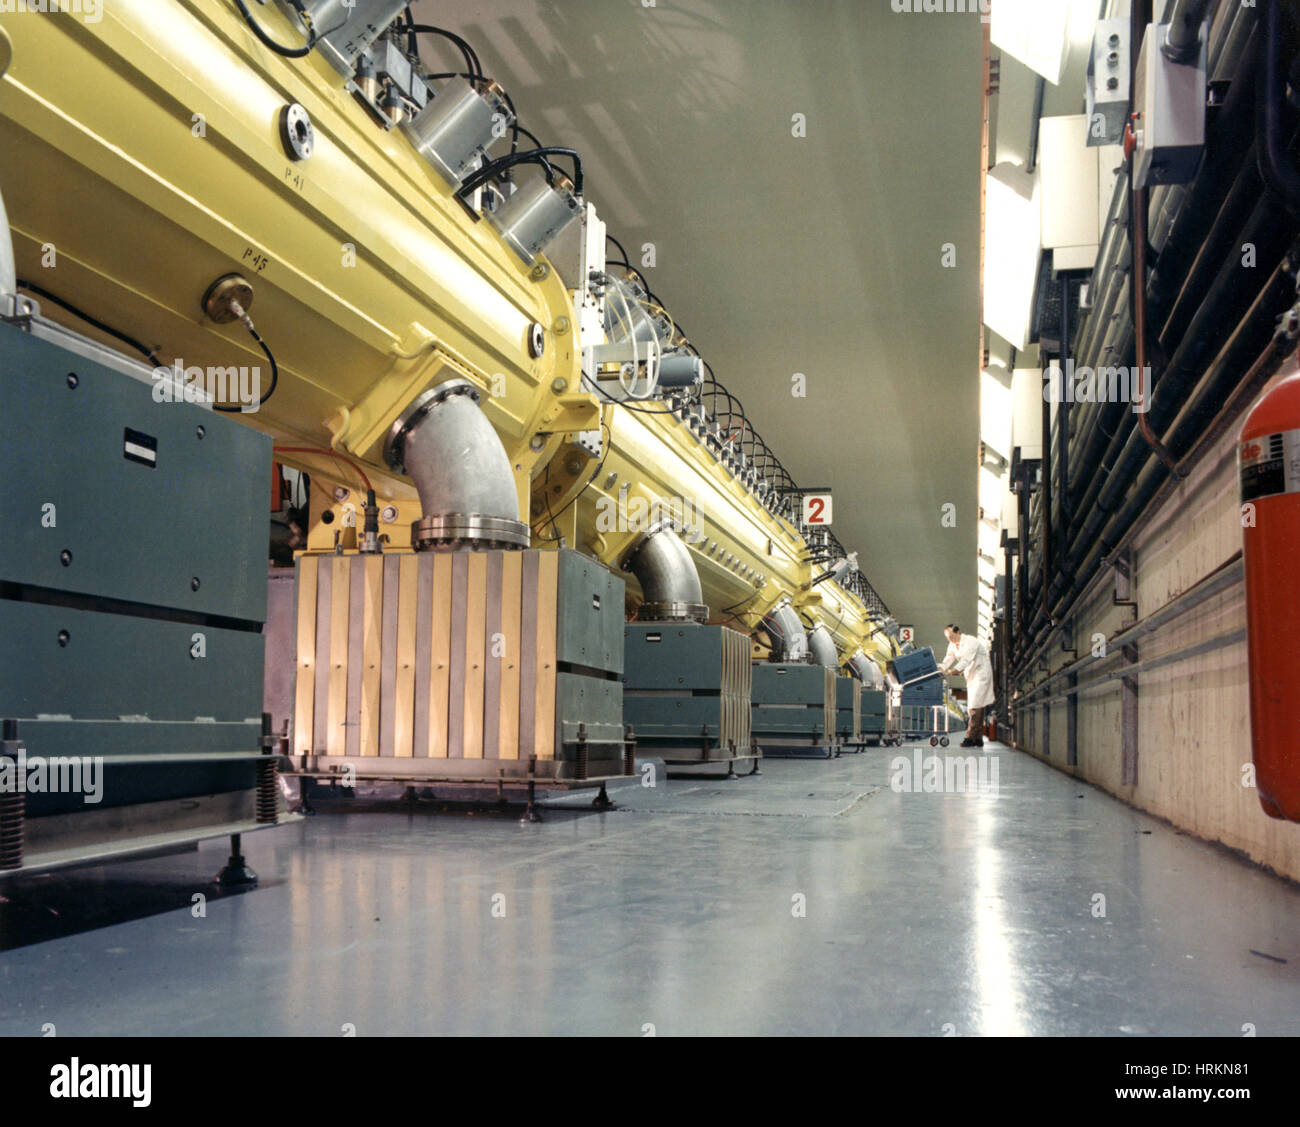 Linear Accelerator (LINAC) - Stock Image